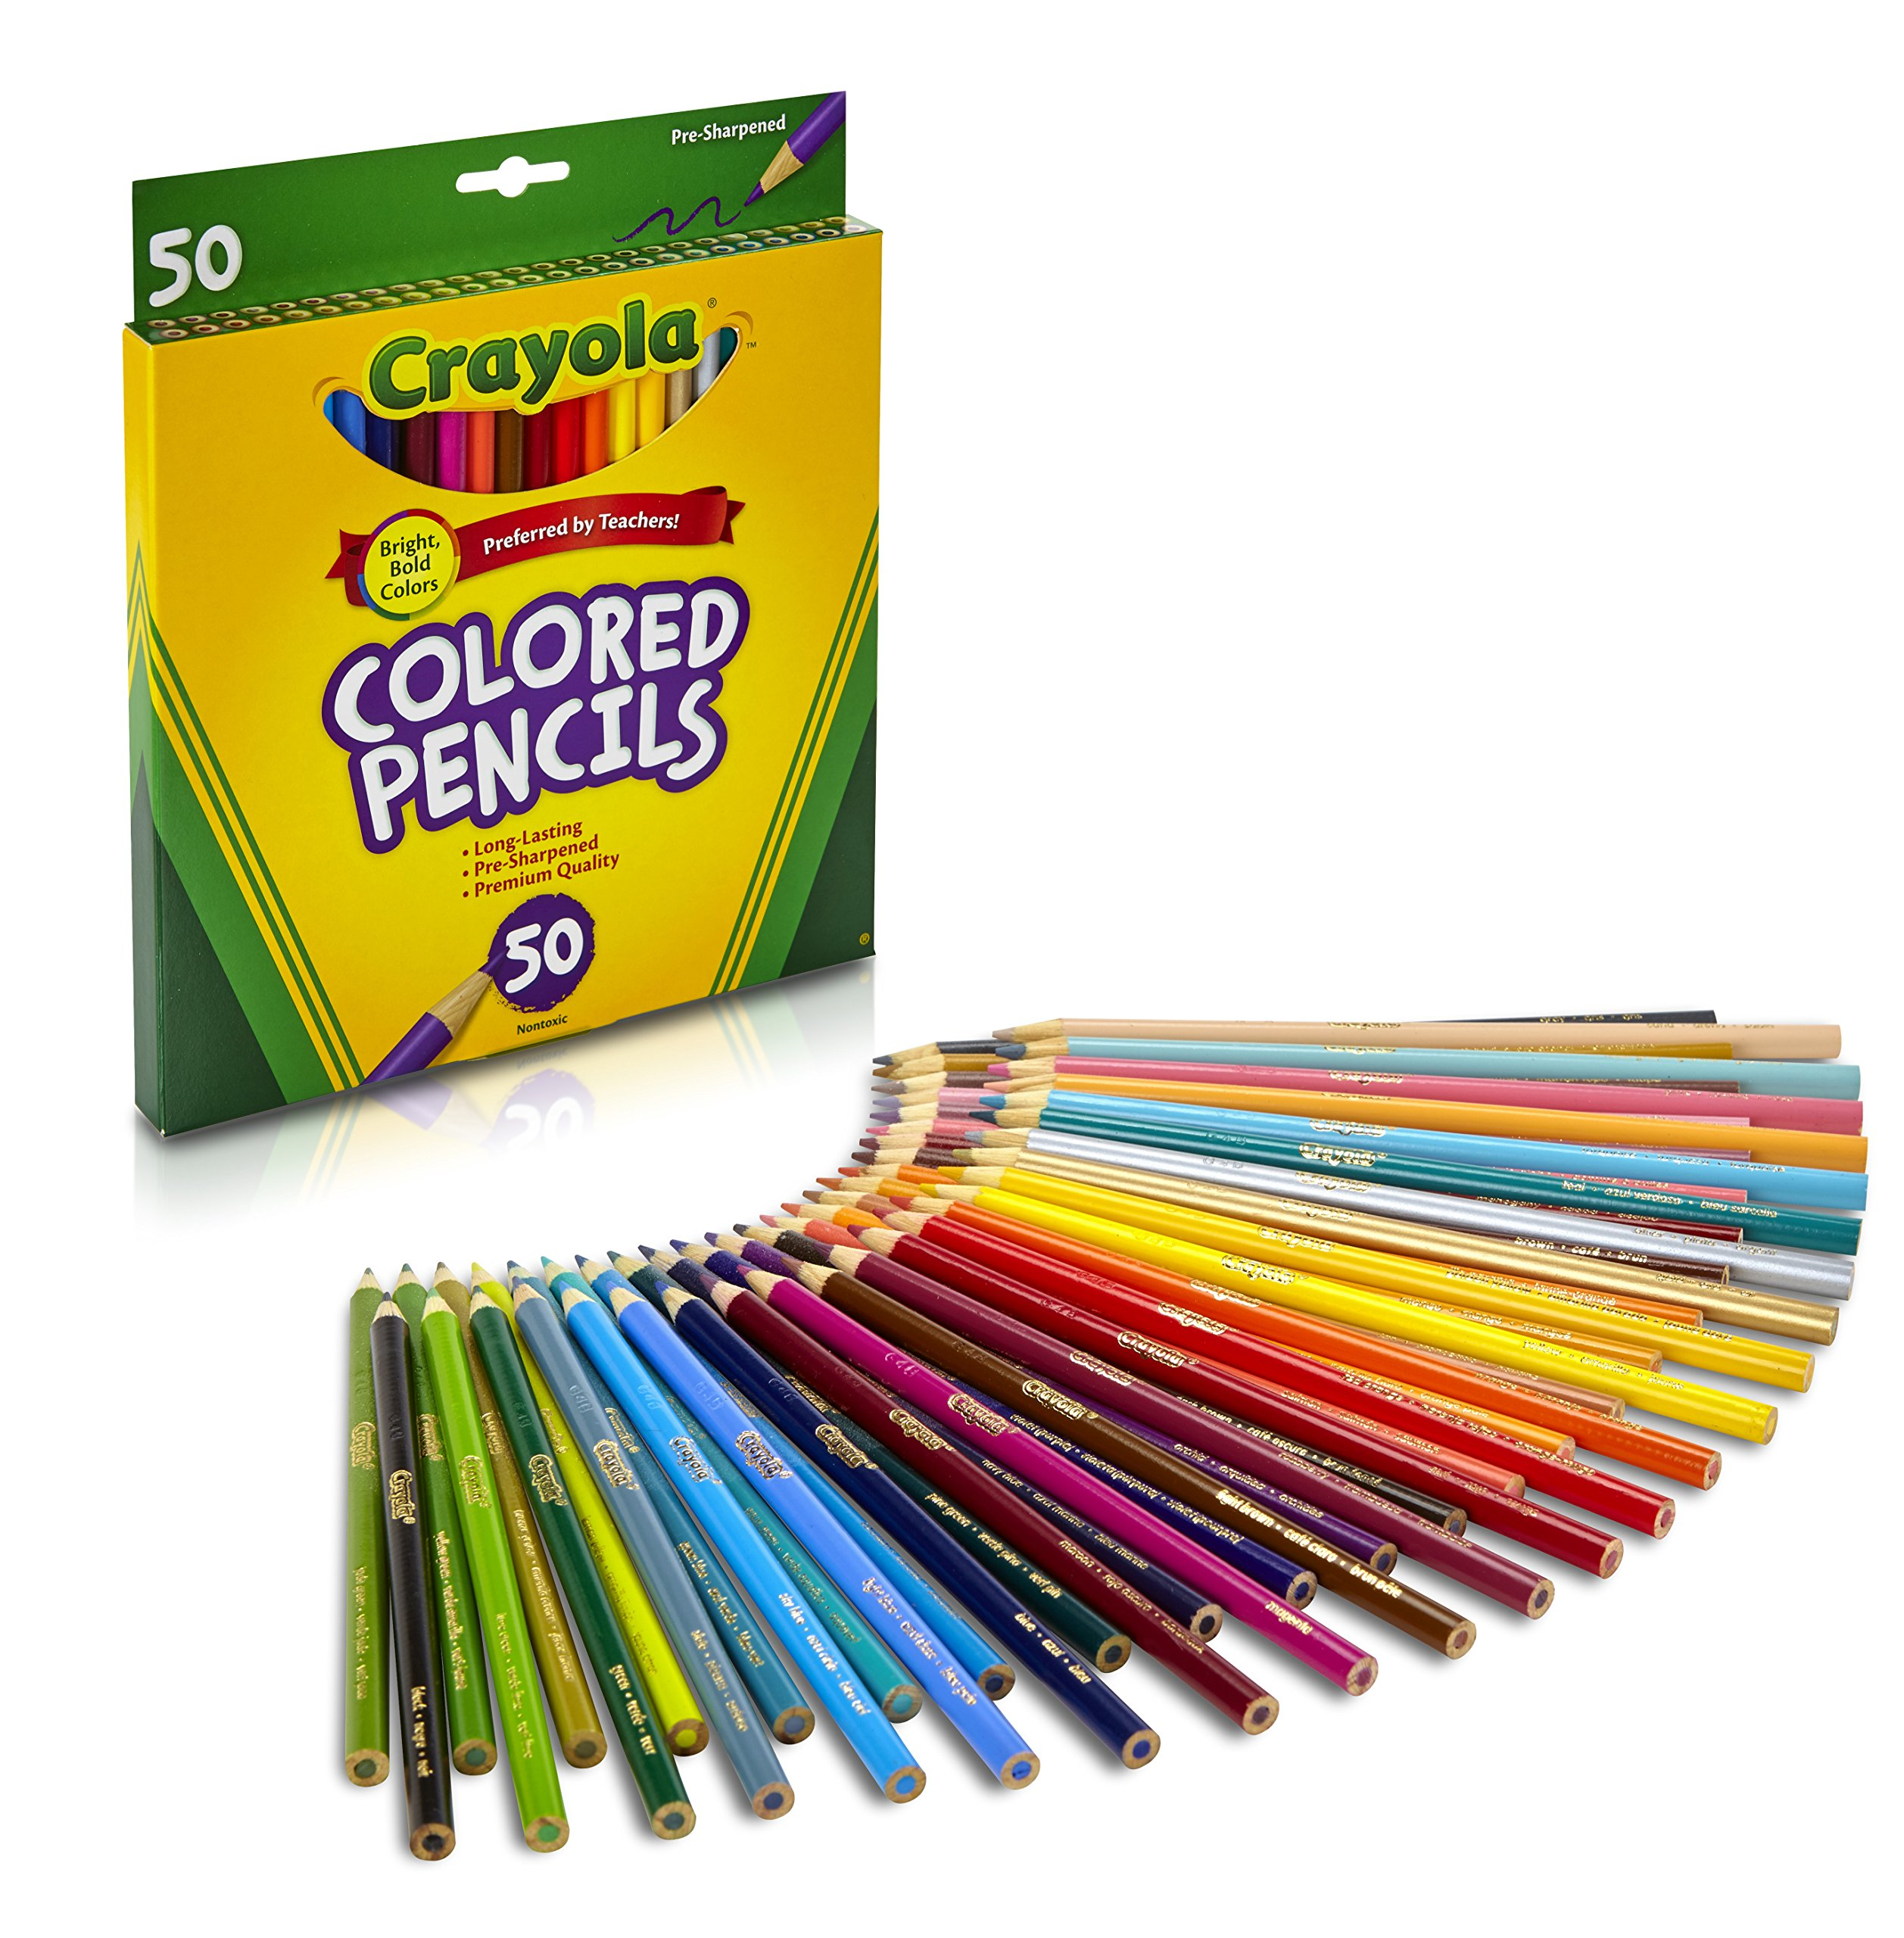 Crayola Colored Pencils, Assorted Colors, 50 Count, Gift